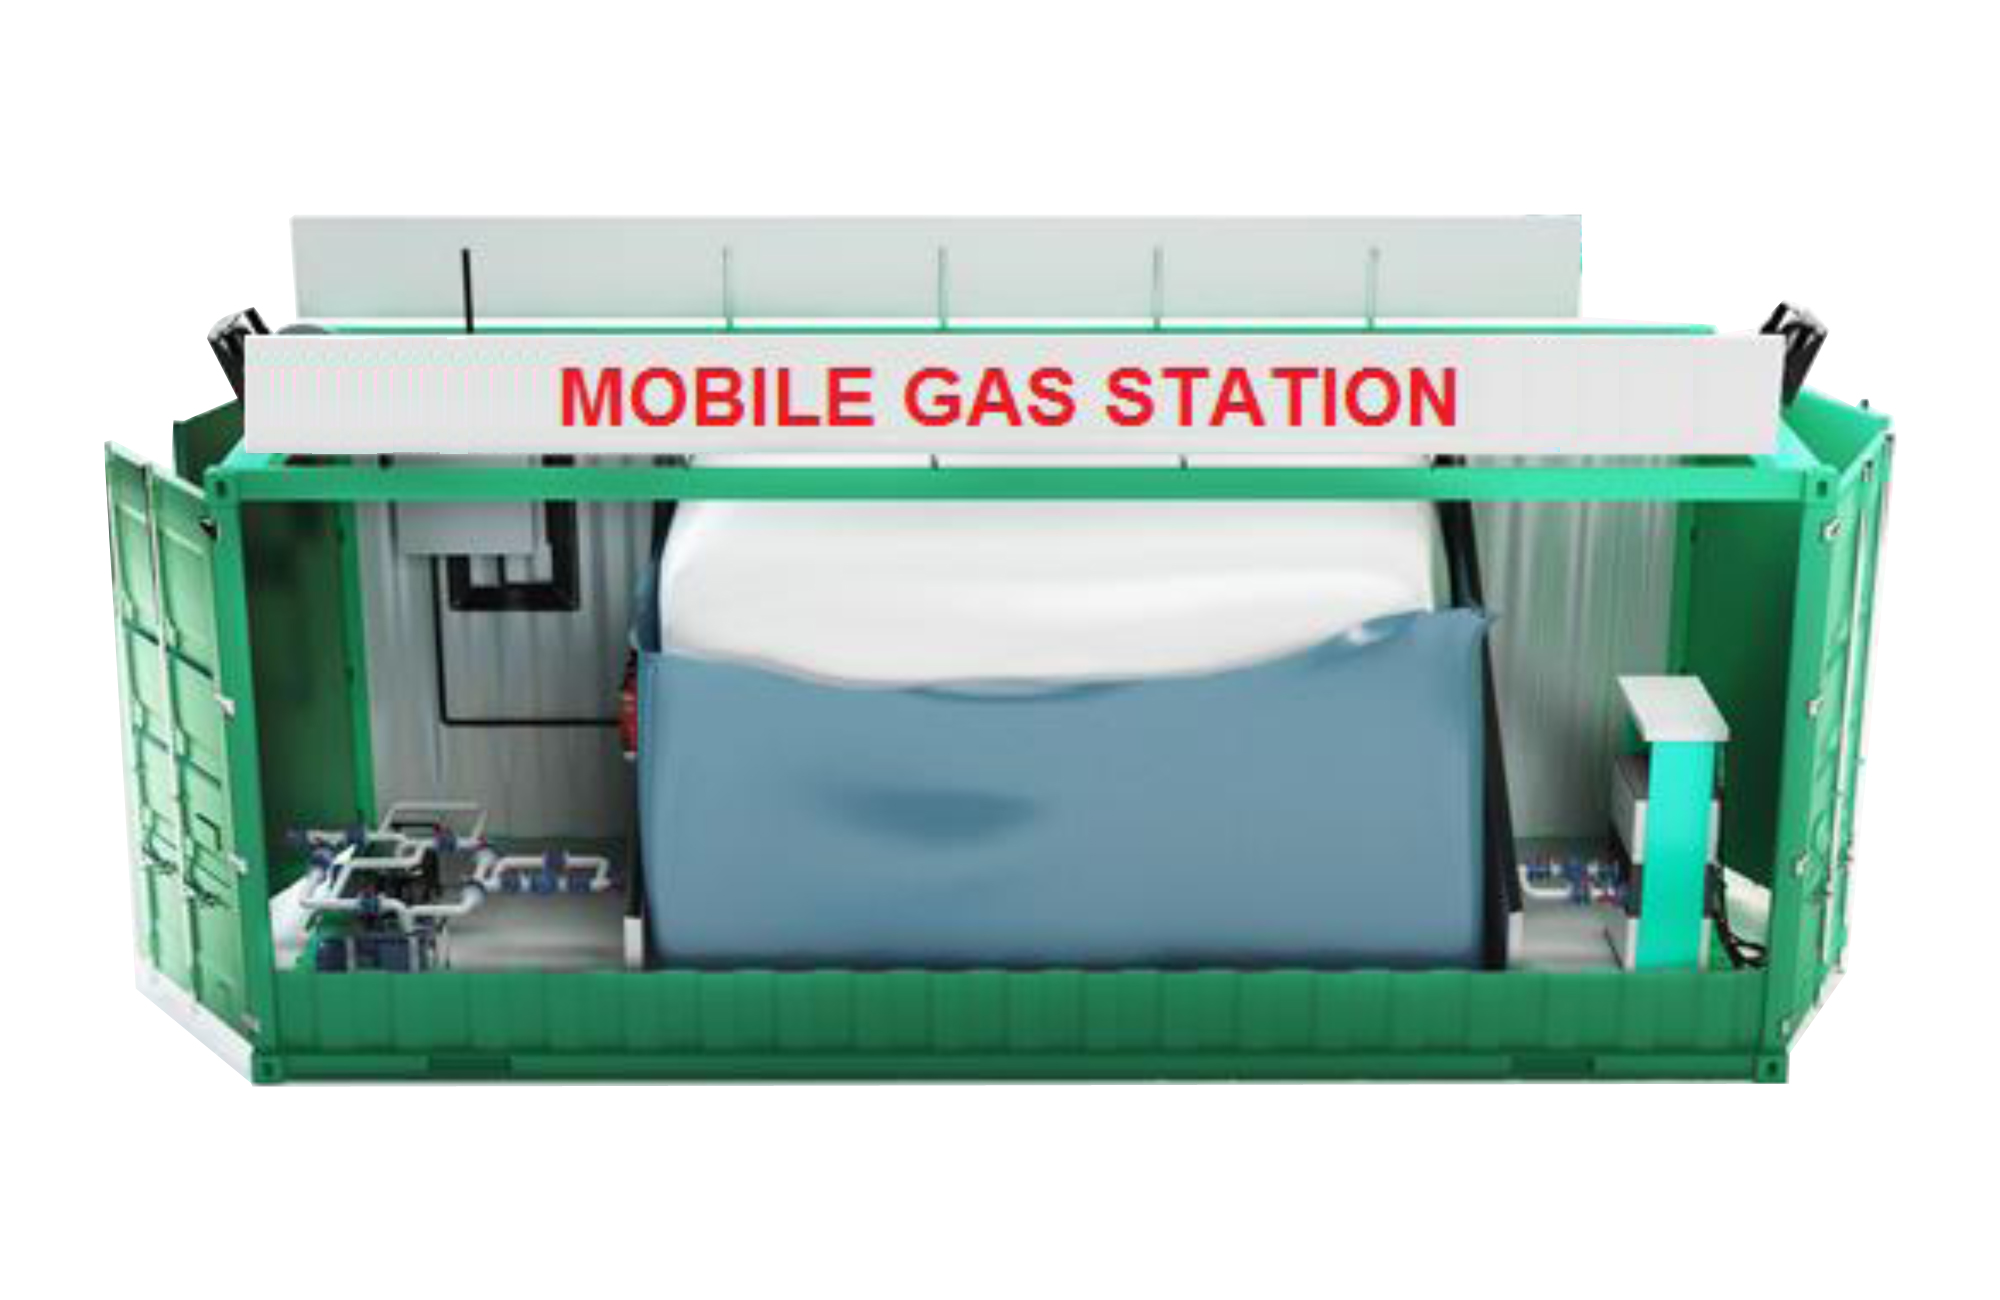 Mobil Gas Stations | Premium storage for water and petroleum - soft